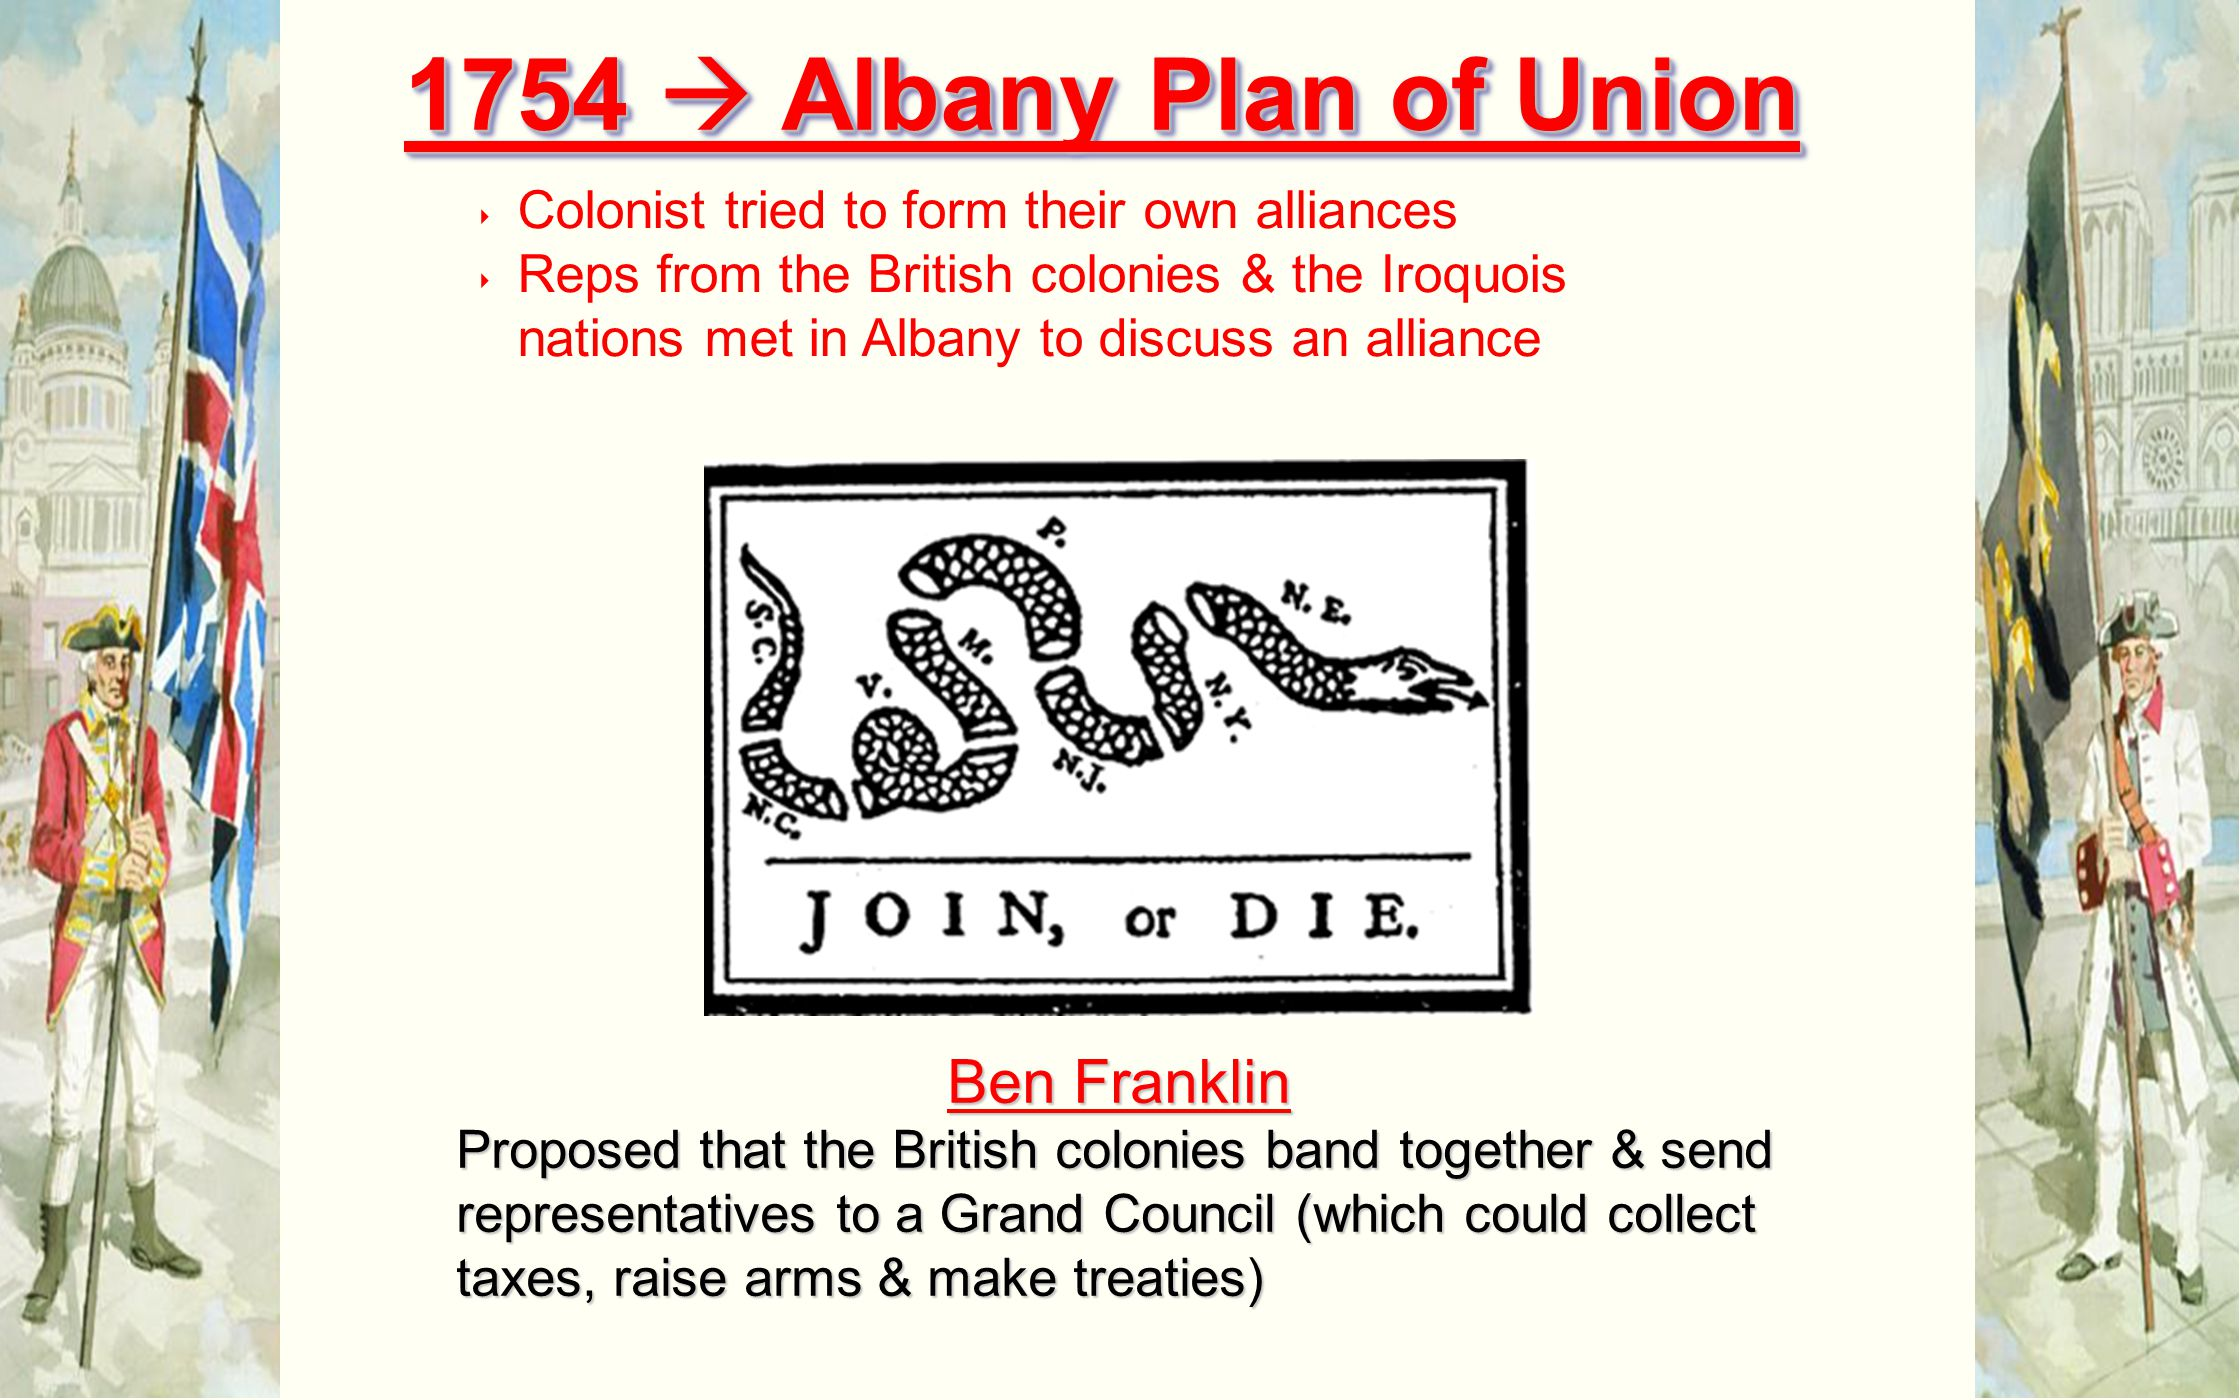 Ben Franklin Proposed that the British colonies band together & send representatives to a Grand Council (which could collect taxes, raise arms & make